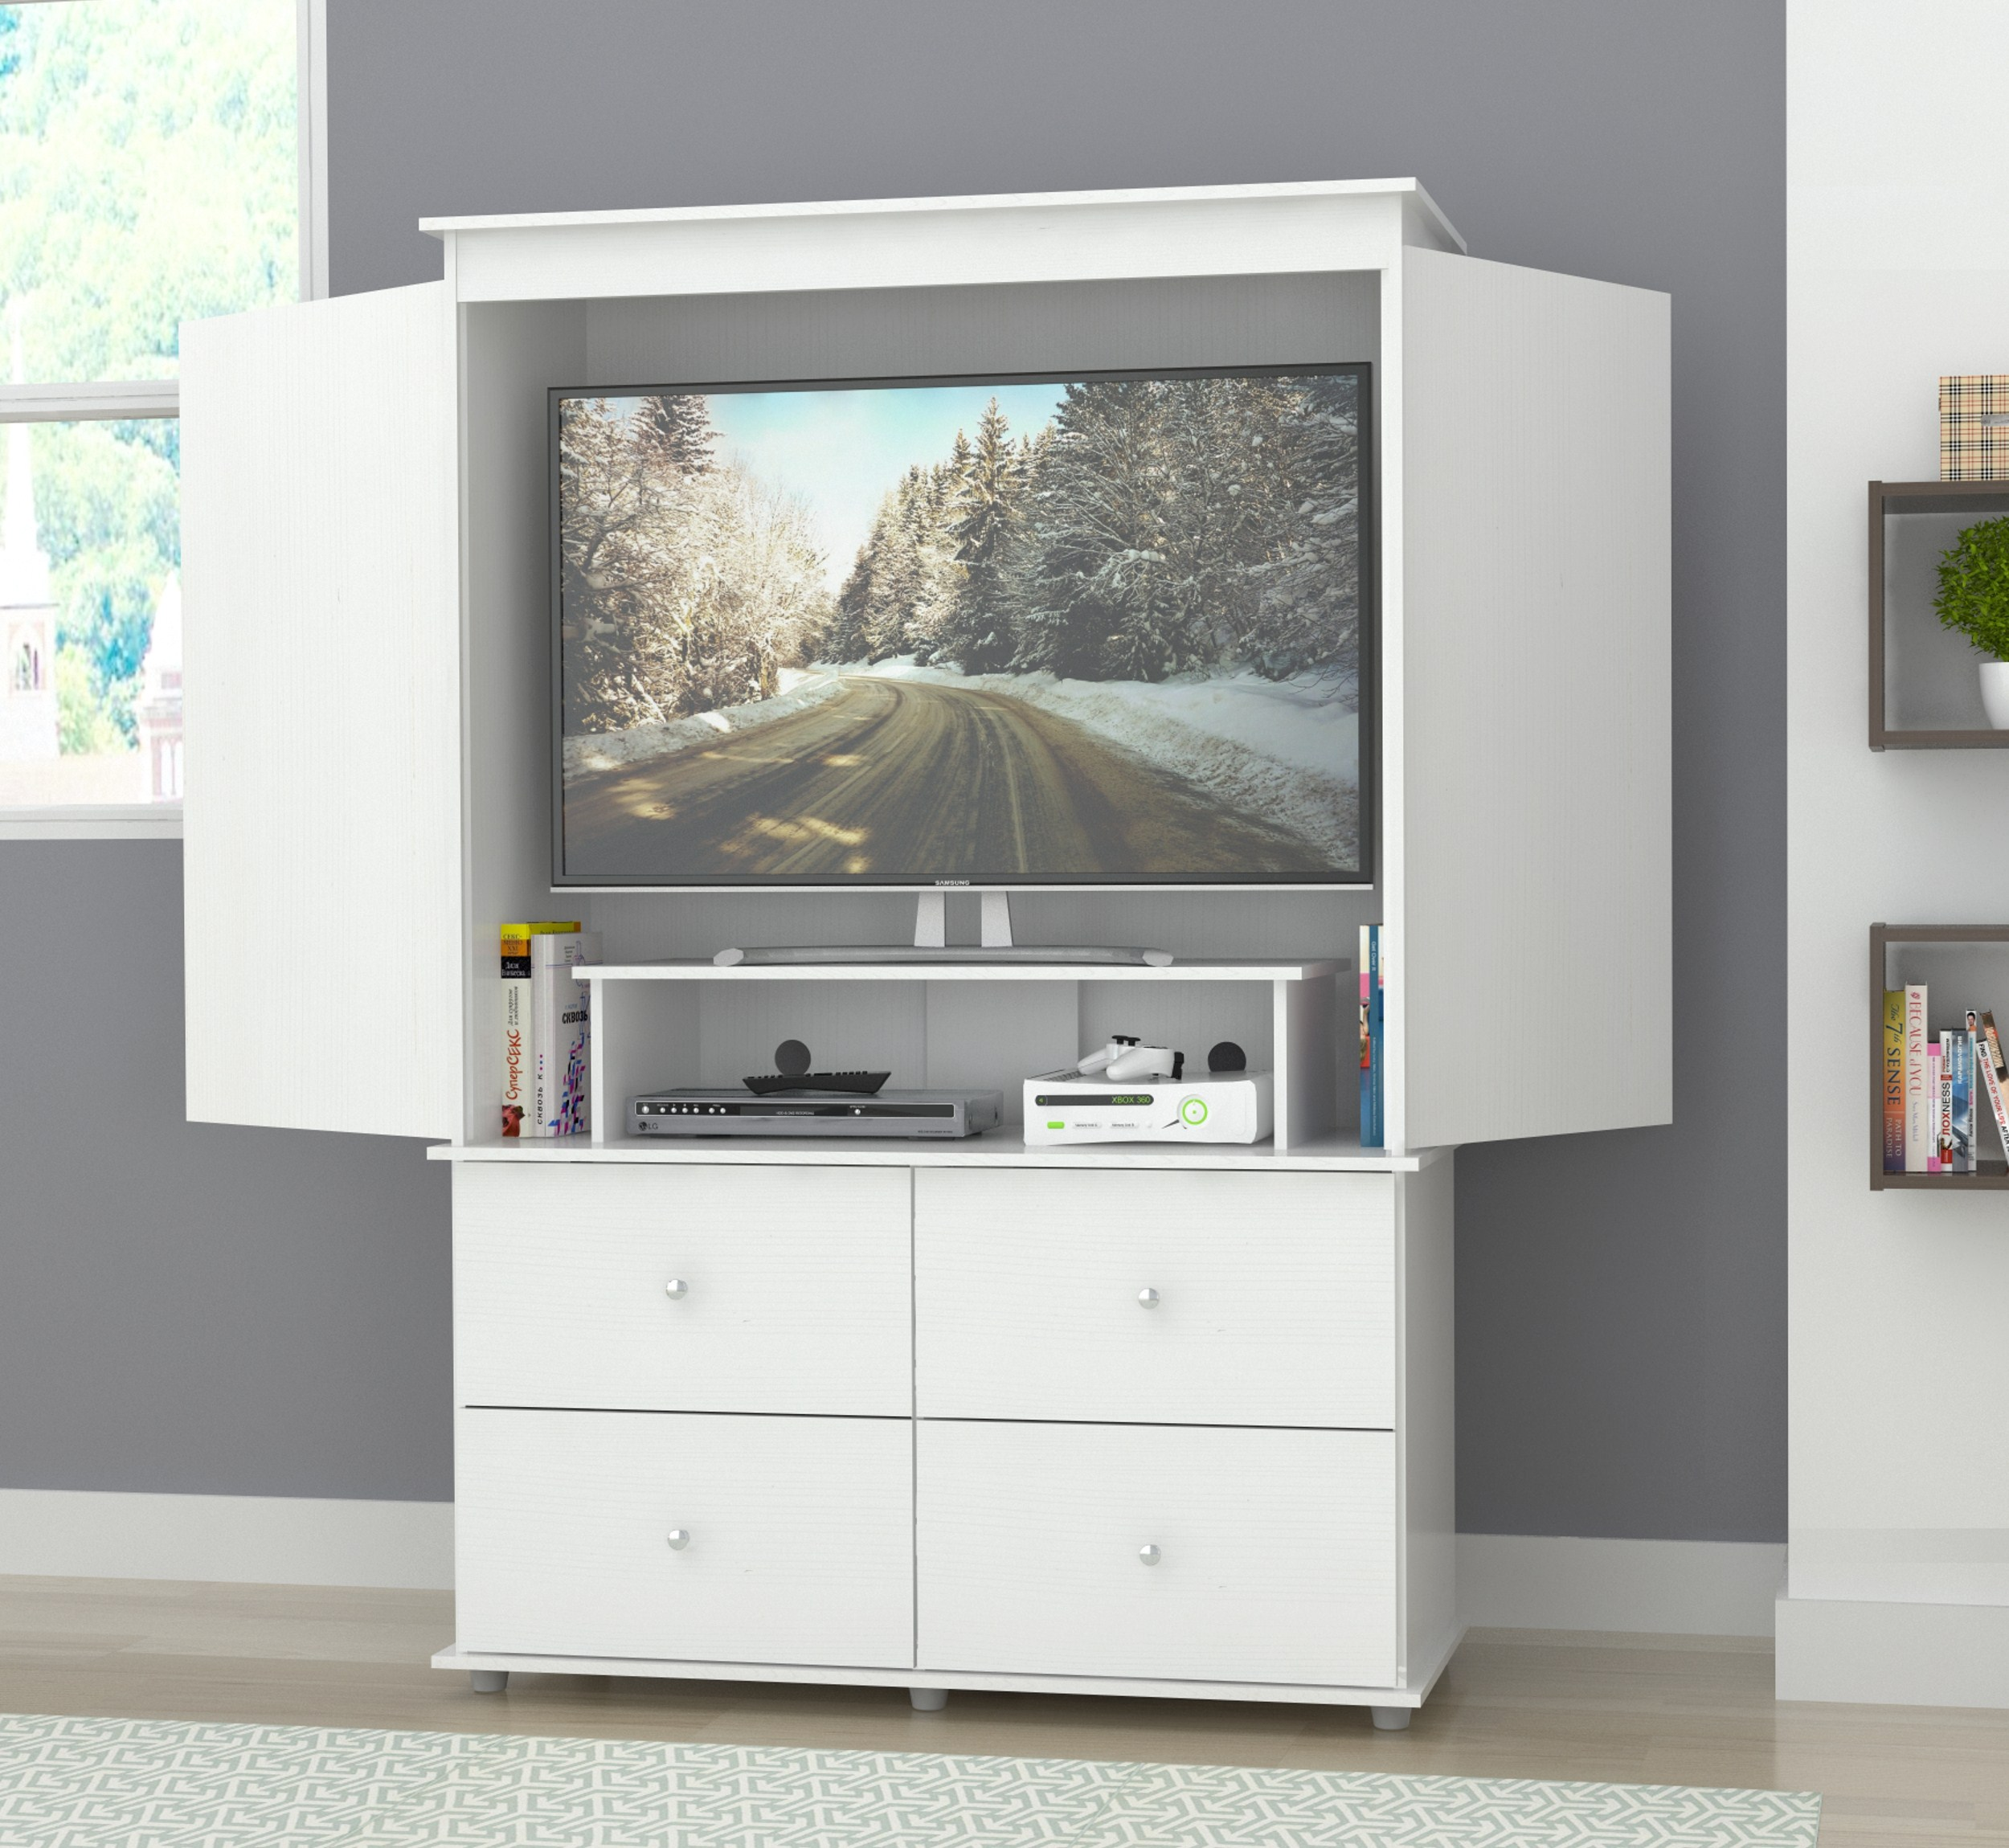 Inval Modern Laricina White Armoire/ AV Video Combo Cabinet